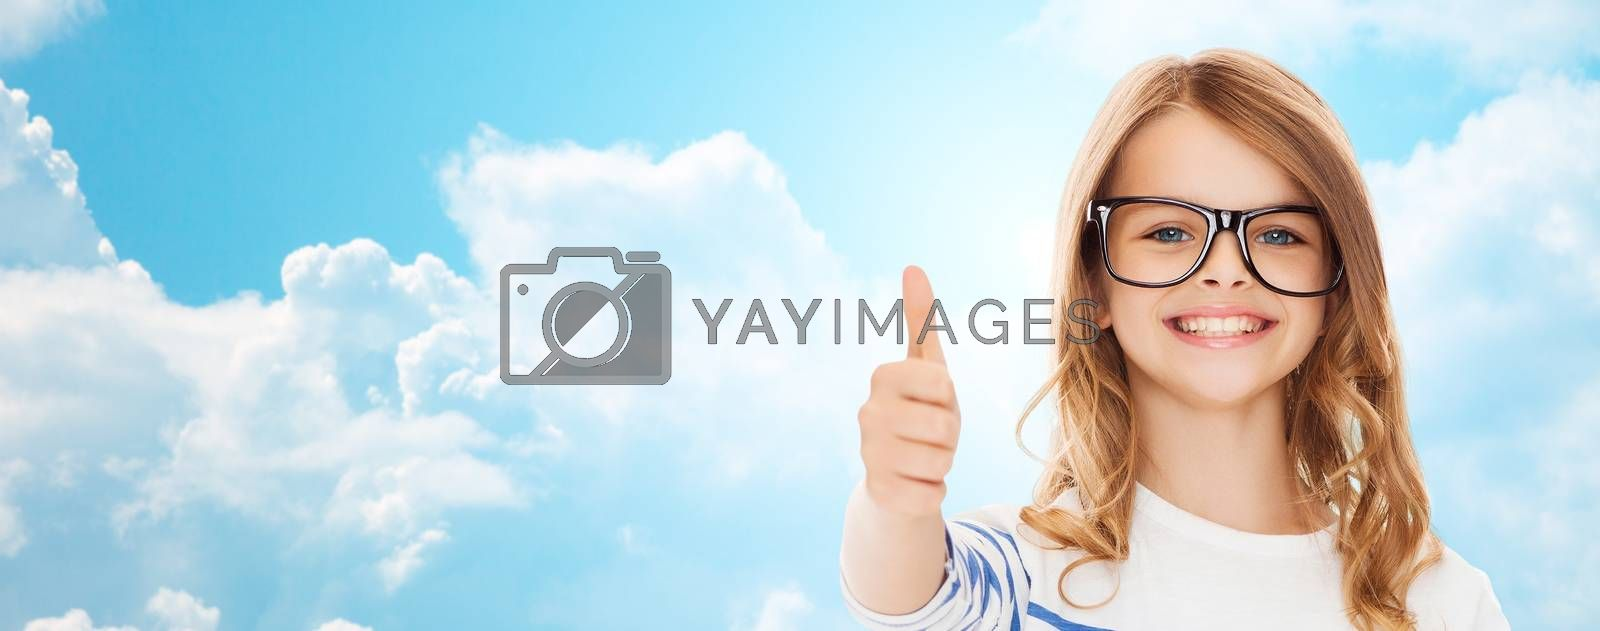 education, school, childhood, people and vision concept - smiling cute little girl with black eyeglasses showing thumbs up gesture over blue sky and white clouds background